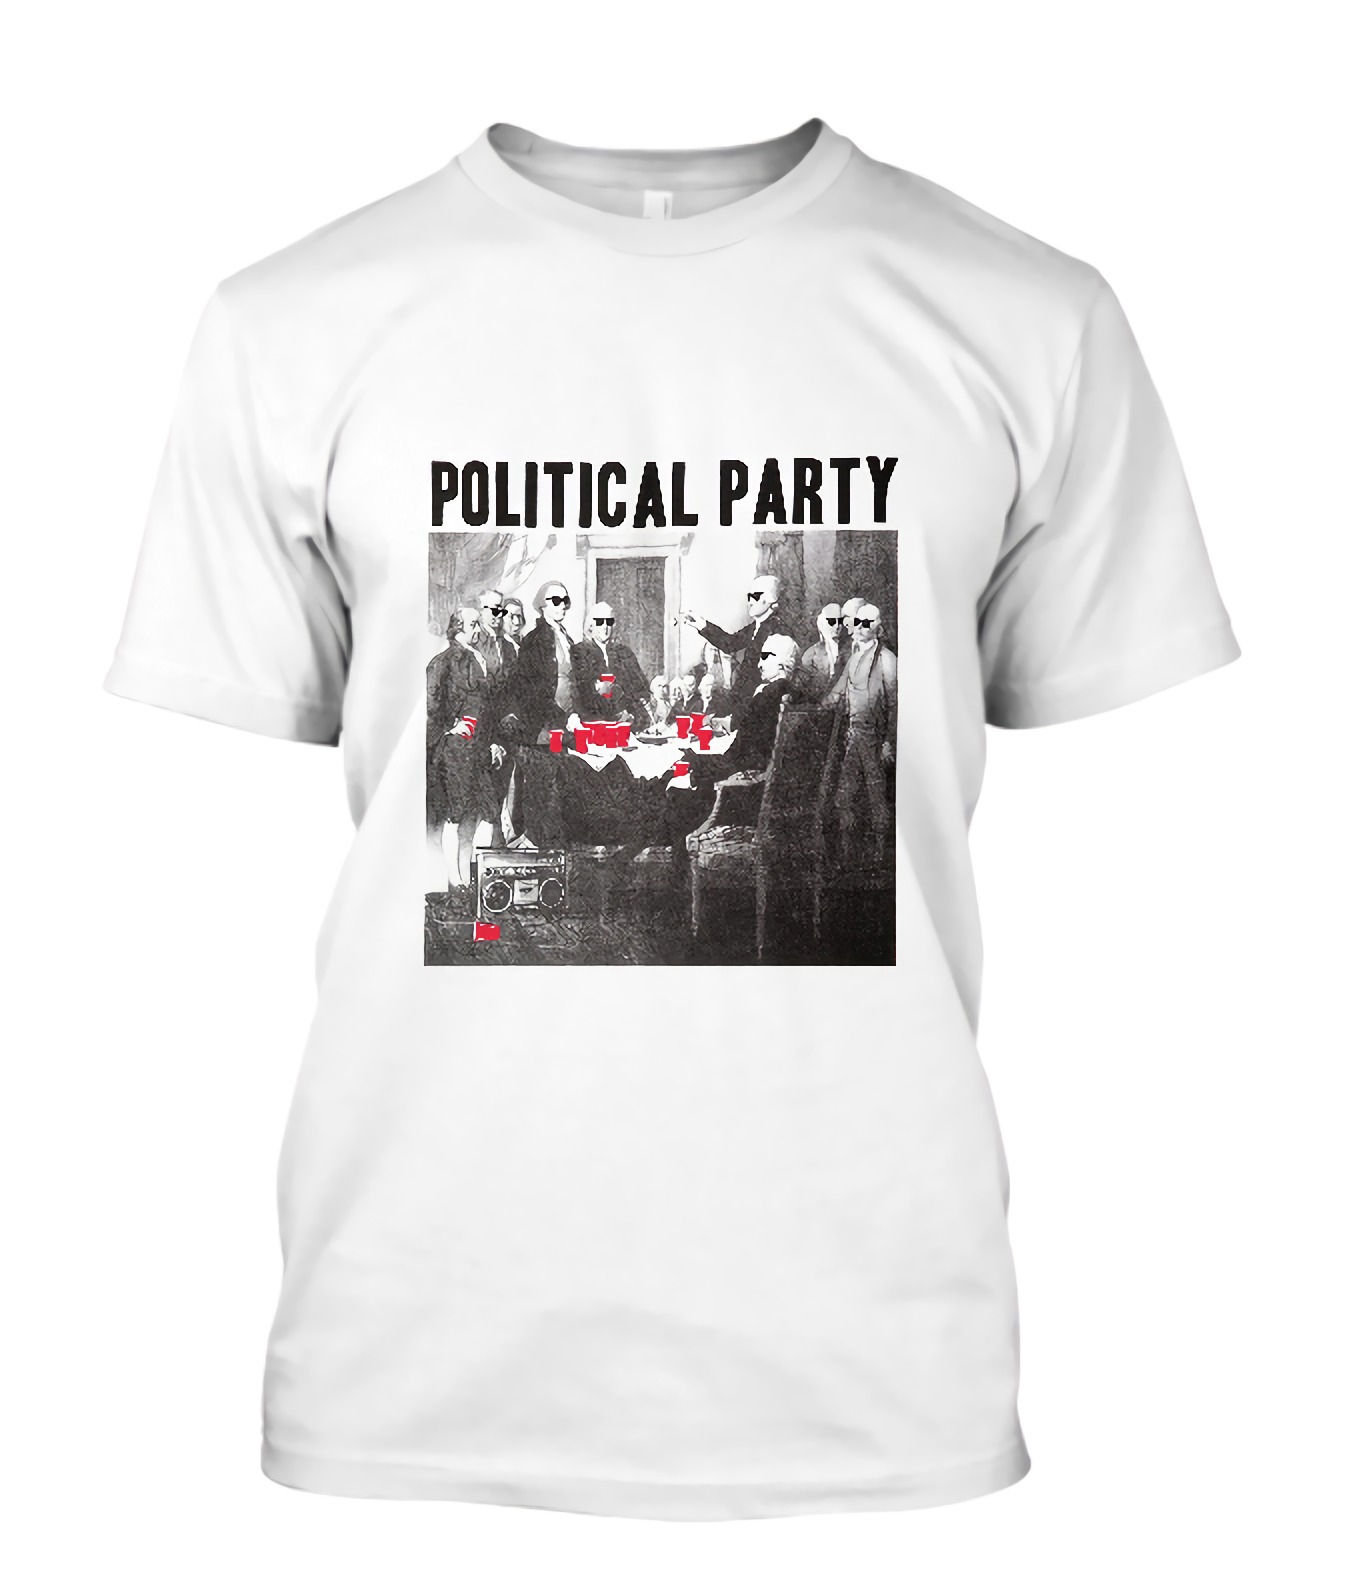 New Political Party Shades & Red Short Sleeve Mens White T-Shirt Size S To 3XL T Shirt Men Tees Brand Clothing Funny